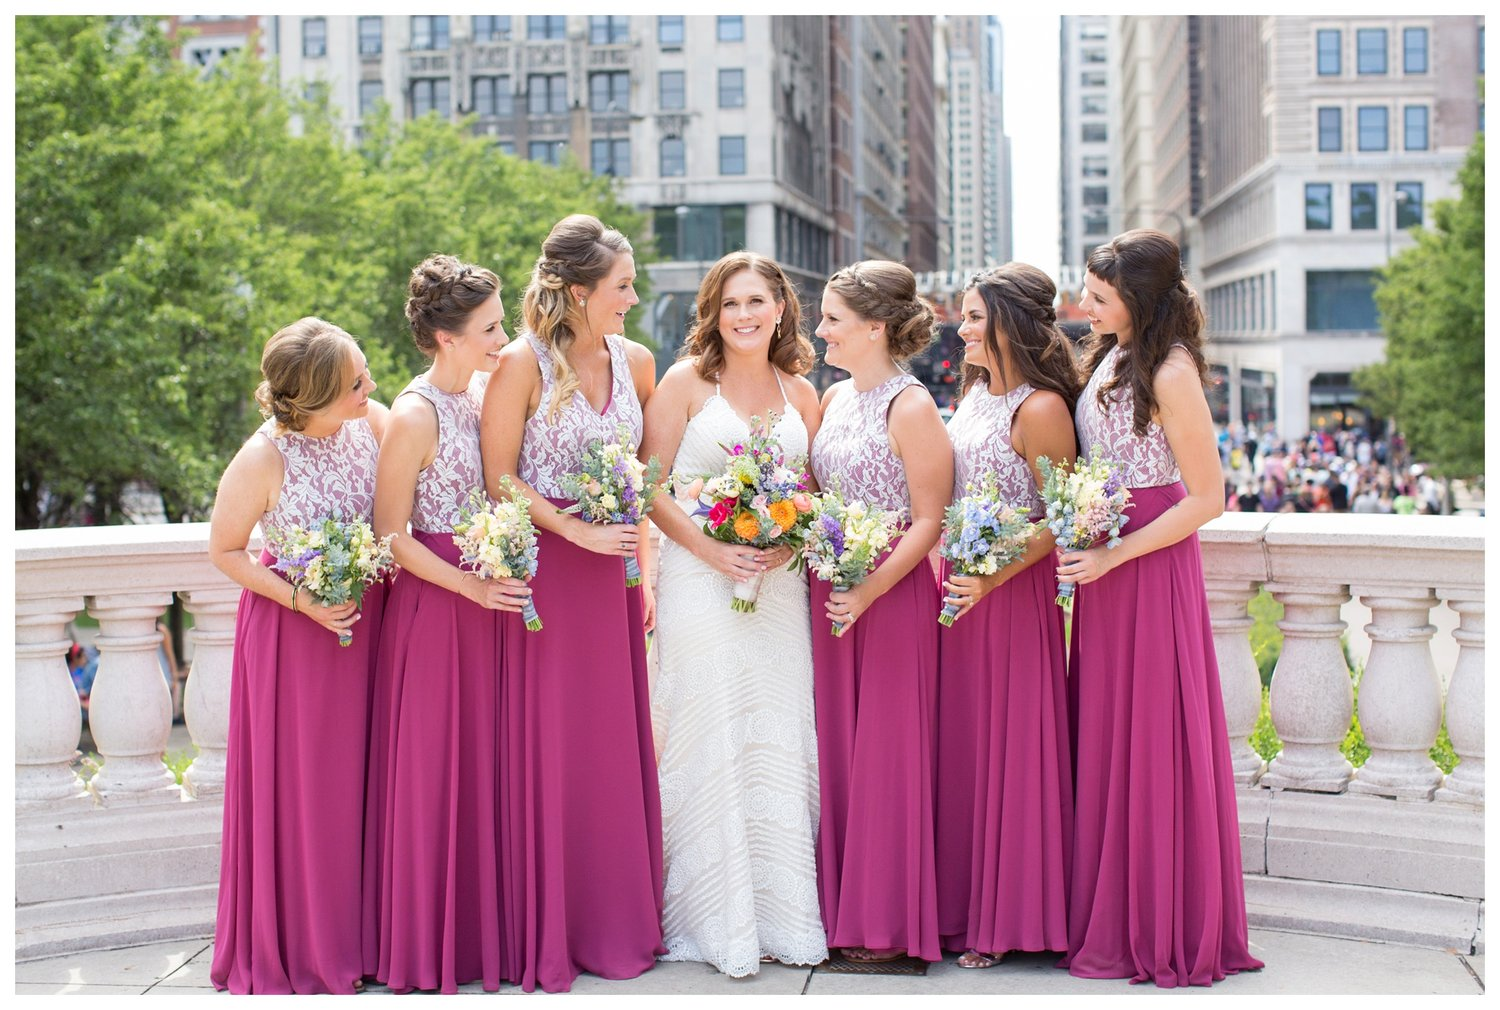 Laura Witherow Photography — Lacuna Artists Lofts Wedding Photography